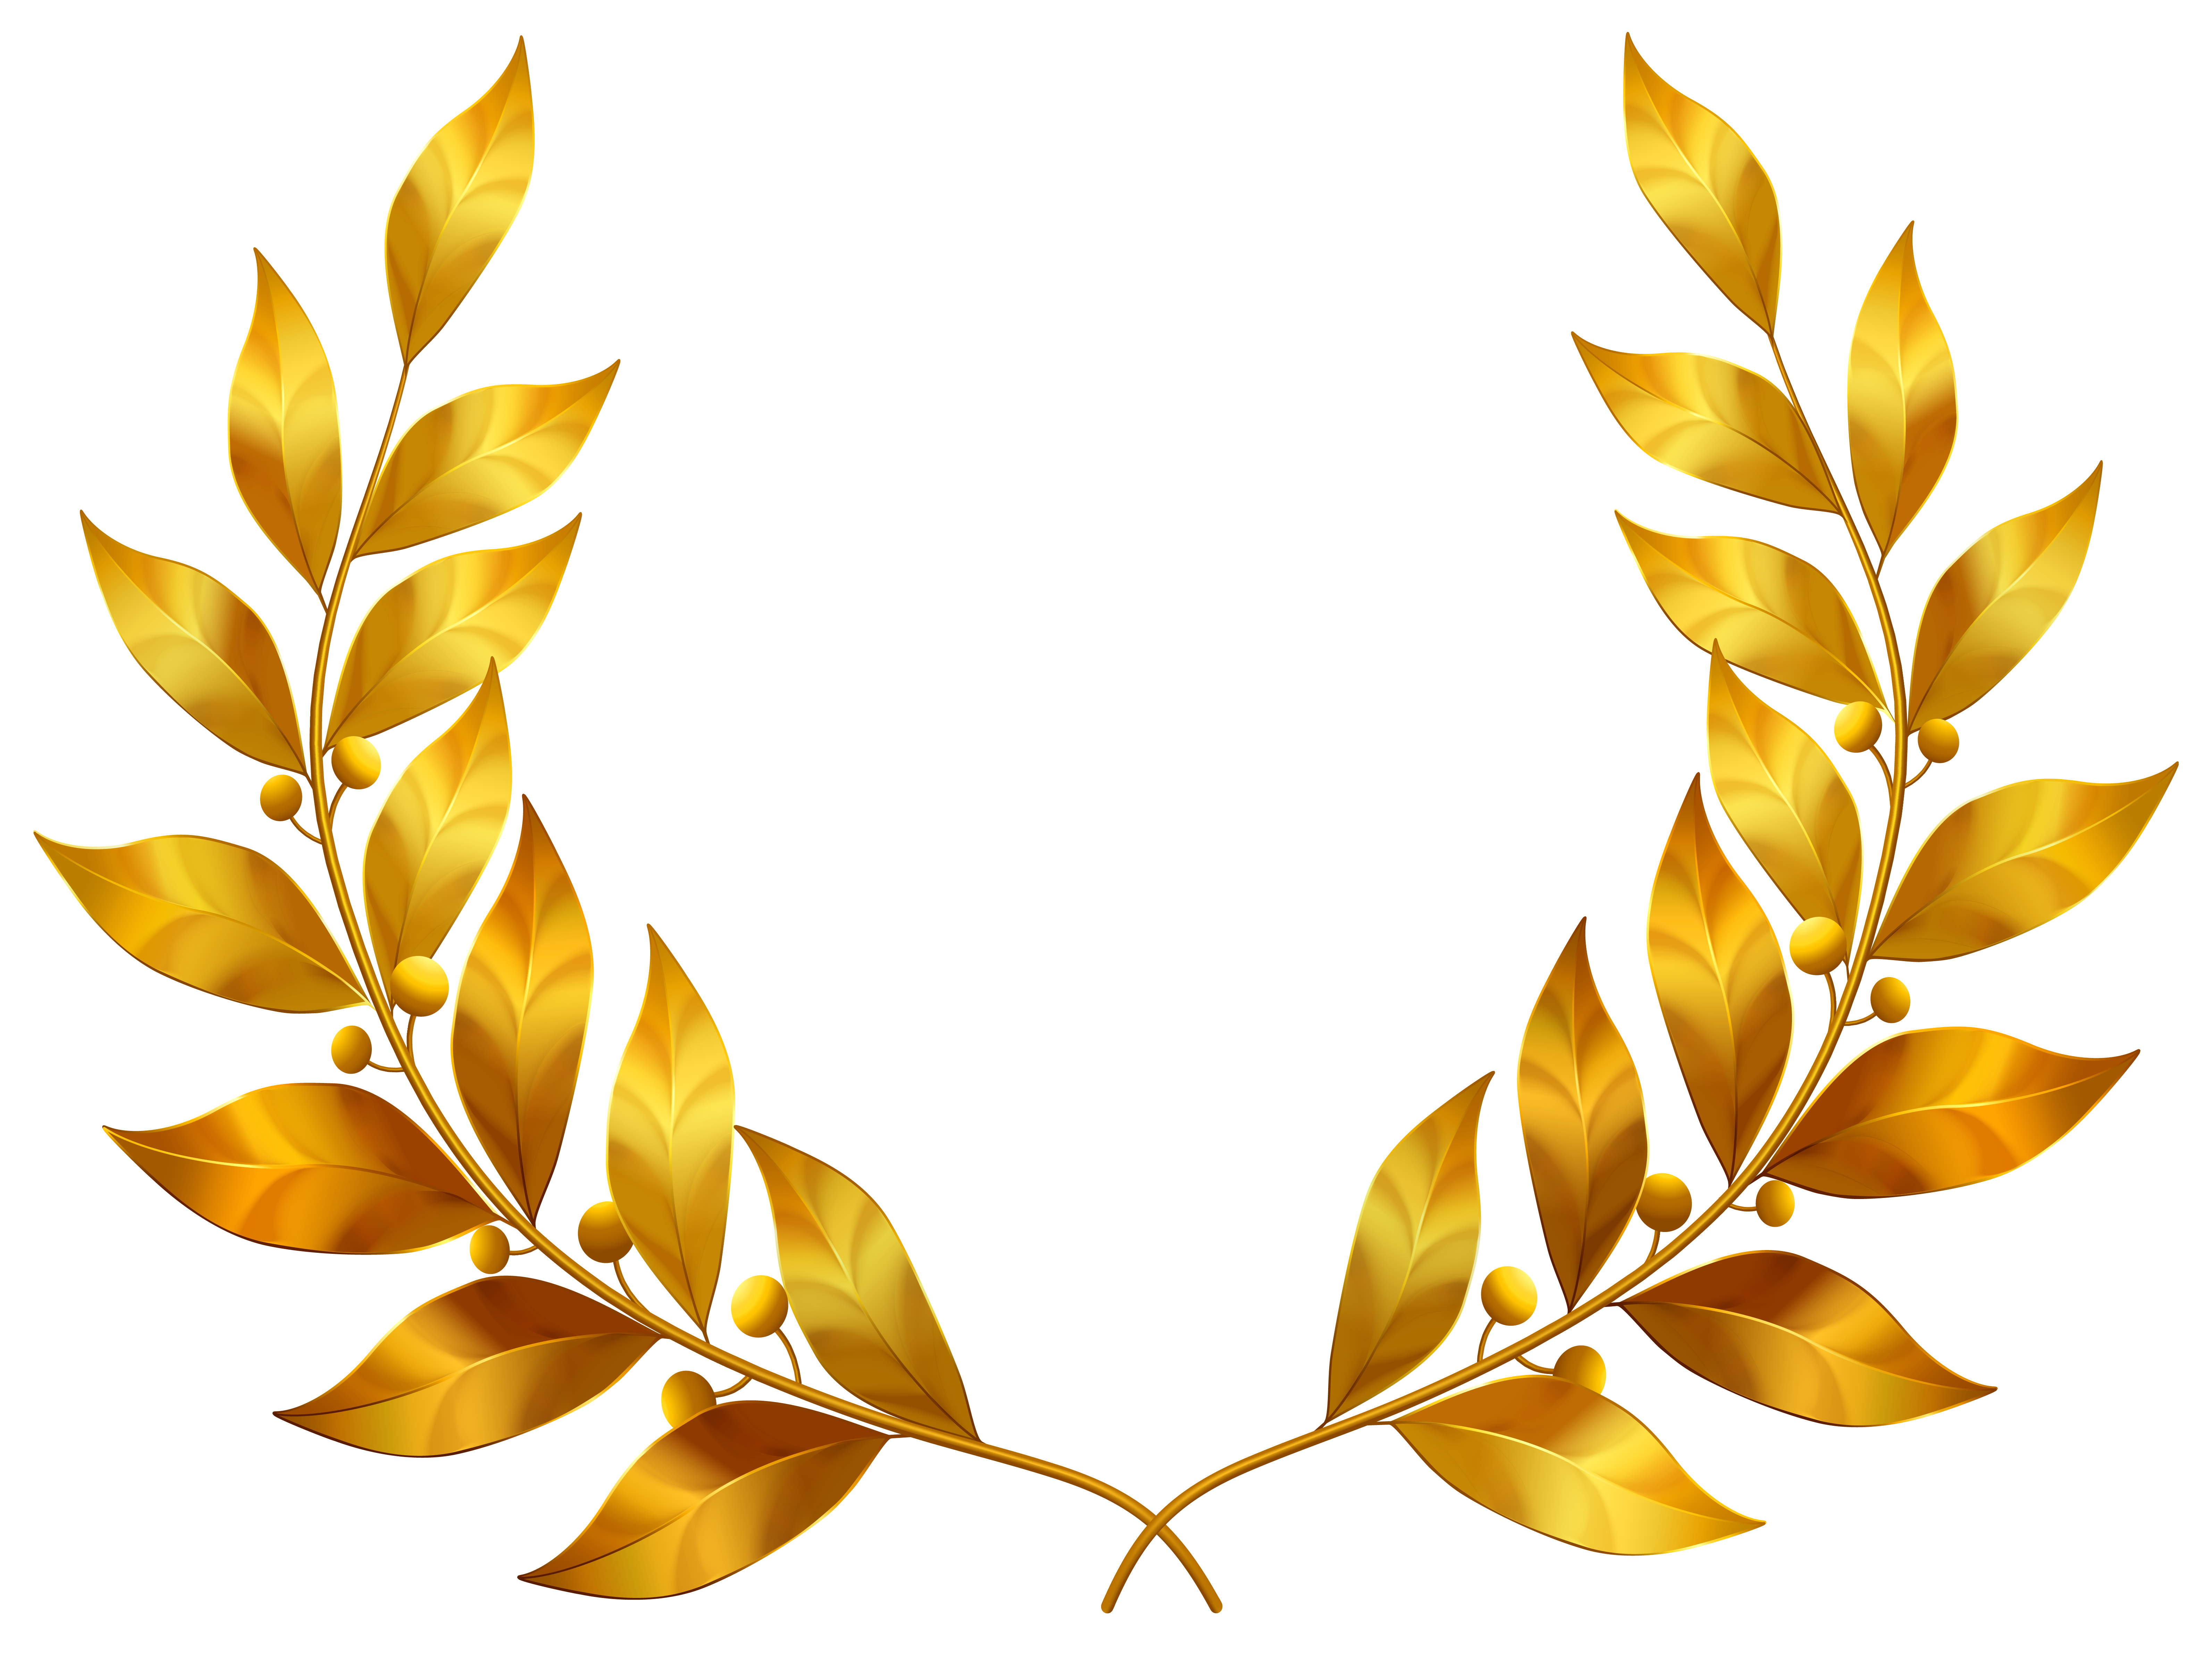 Gold Leaves Clip Art.